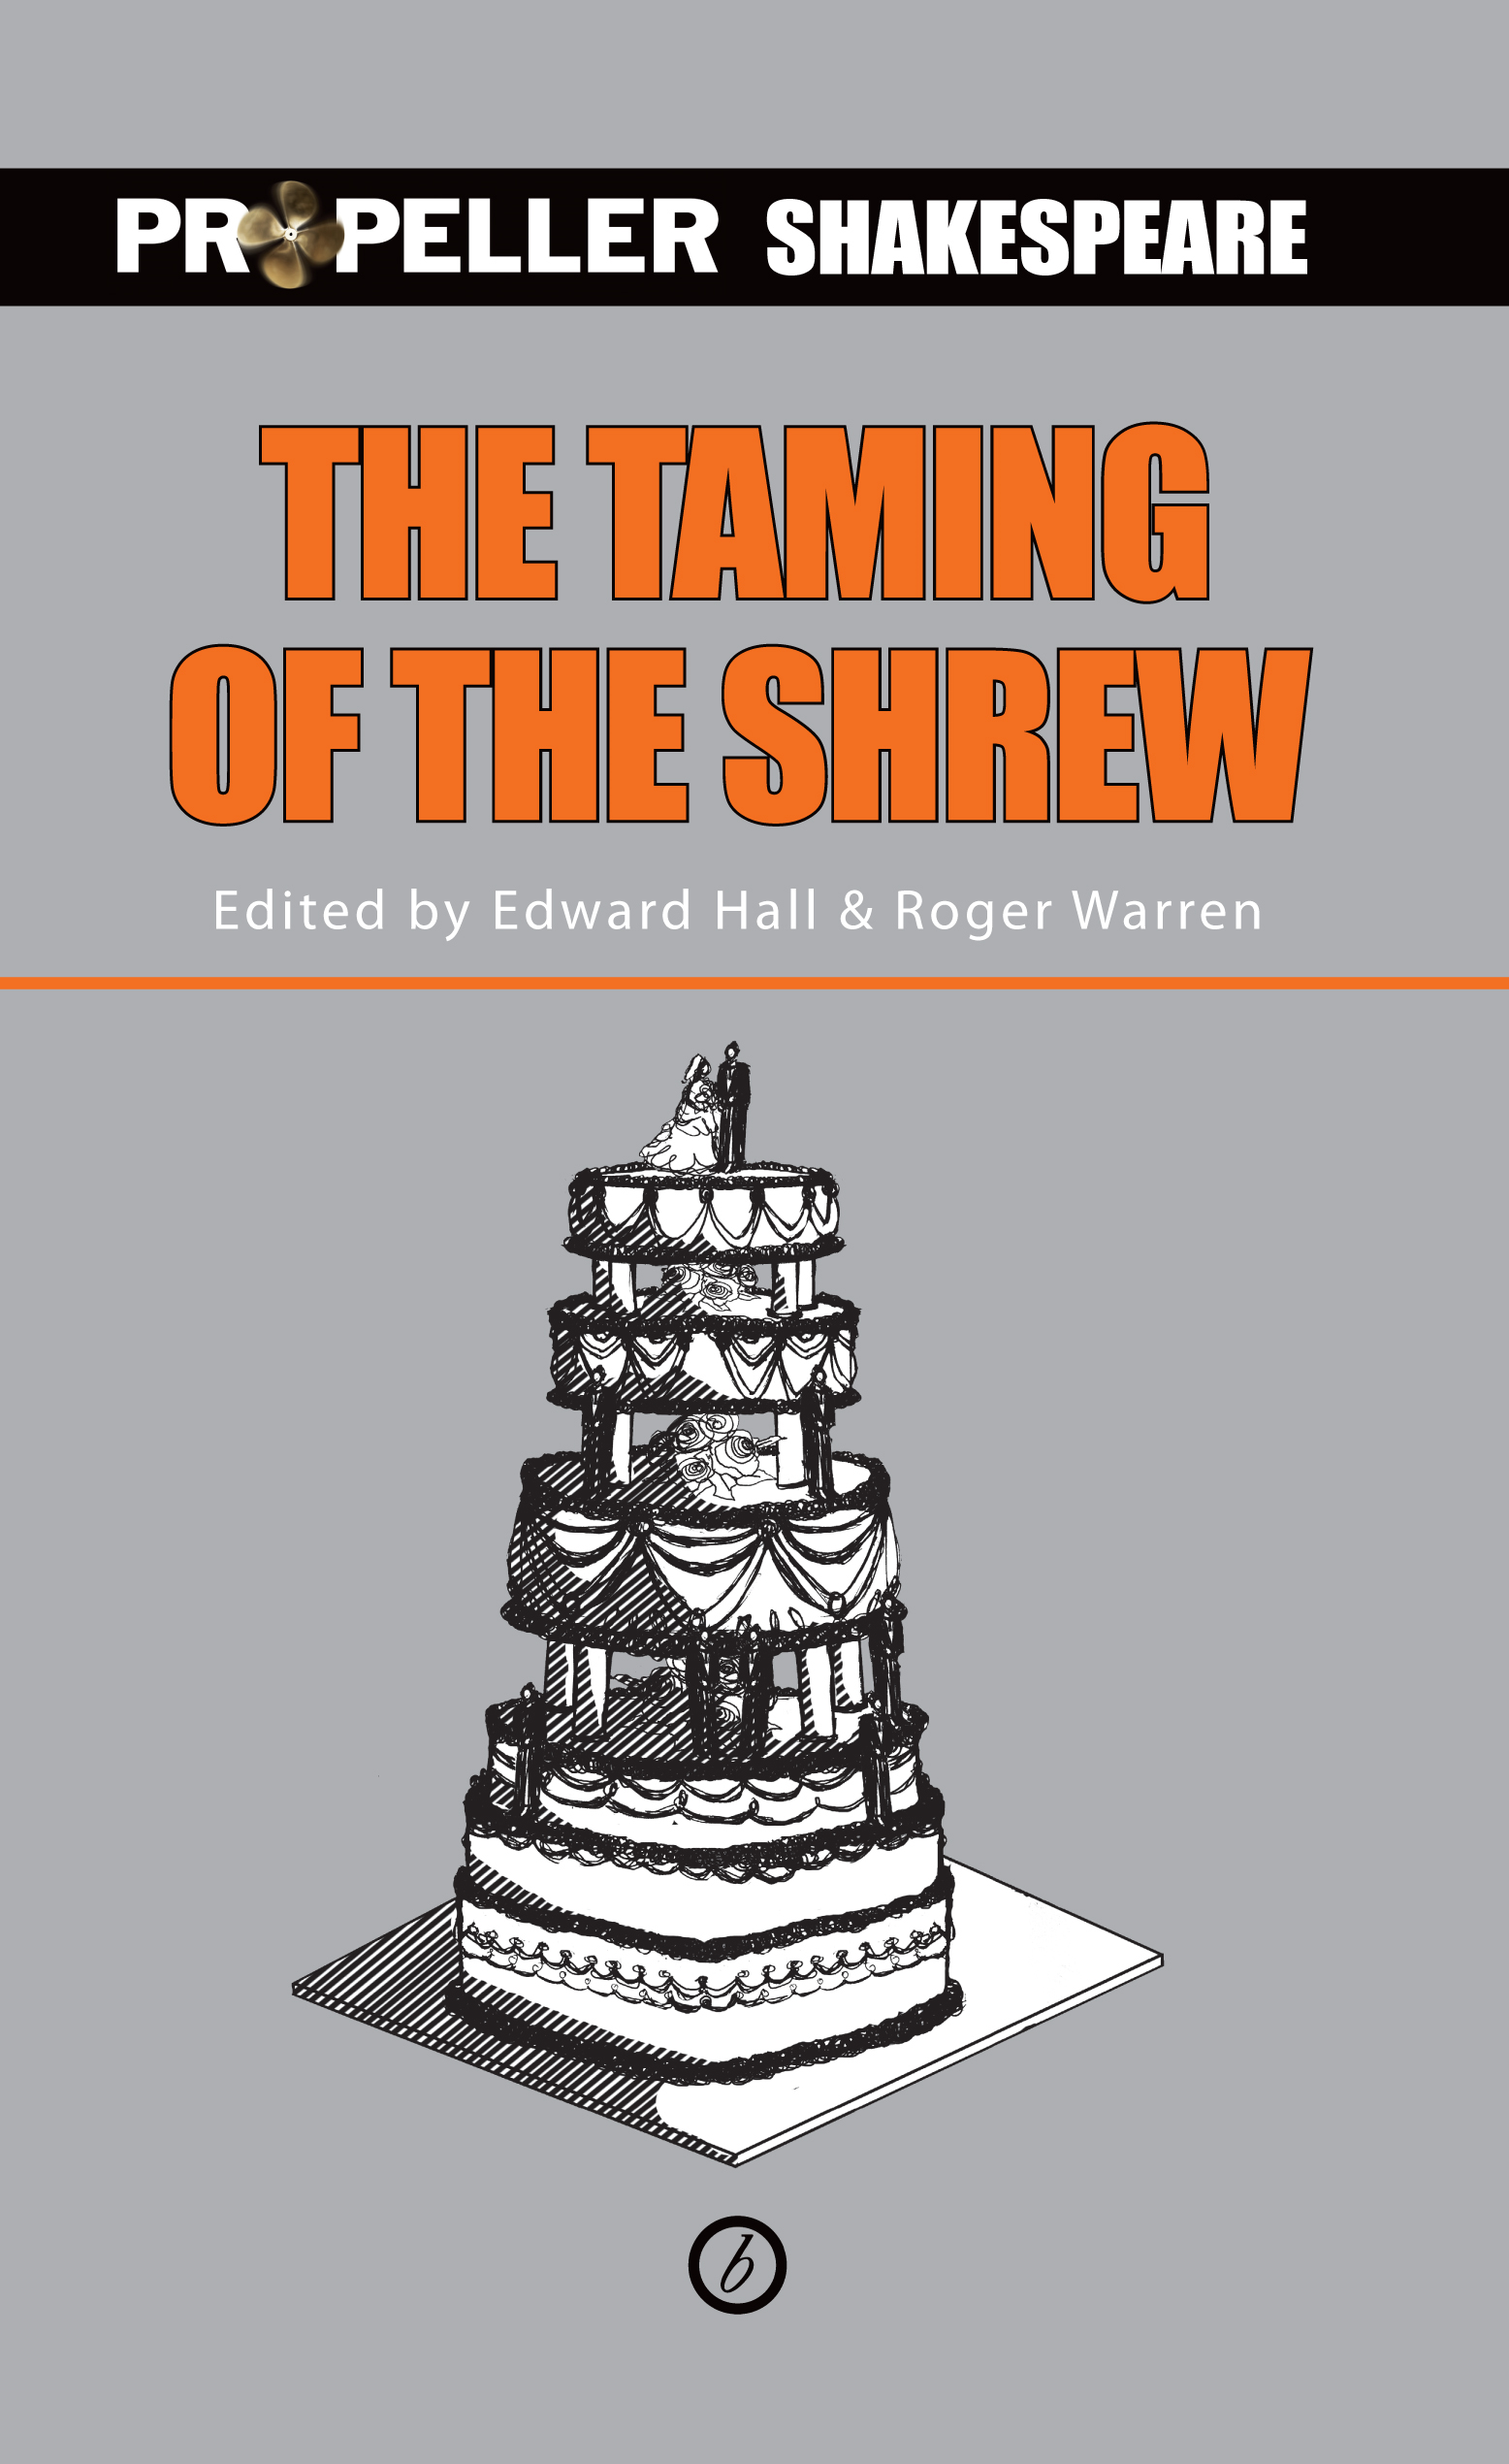 The Taming of the Shrew (Propeller Shakespeare)